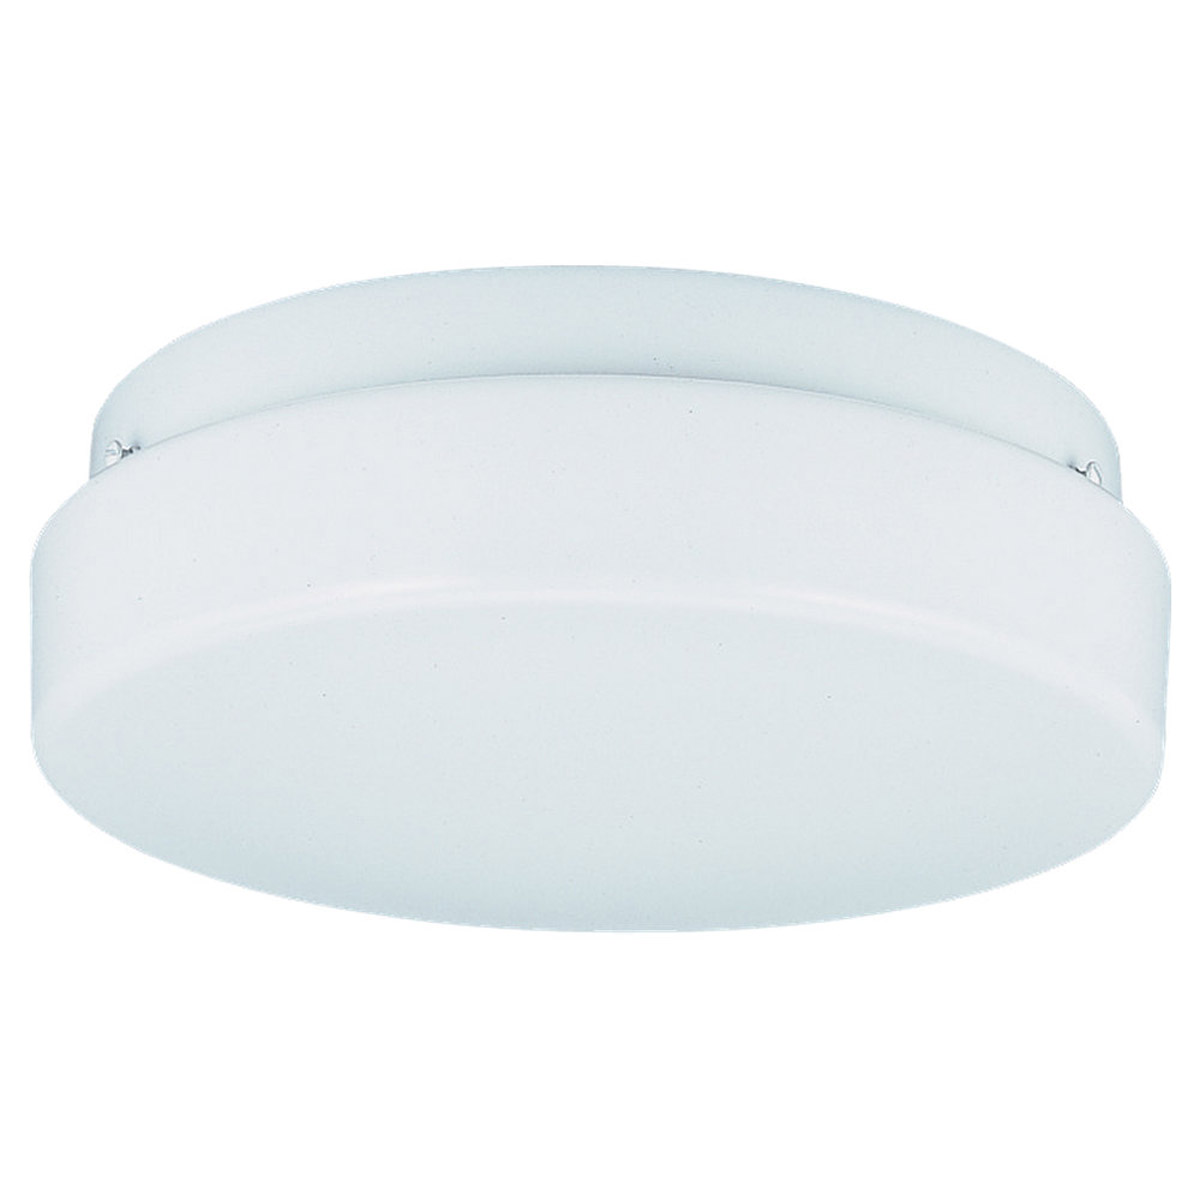 Sea Gull 7925BLE-15 Haylee 1 Light 11 inch White Flush Mount Ceiling Light in Fluorescent photo